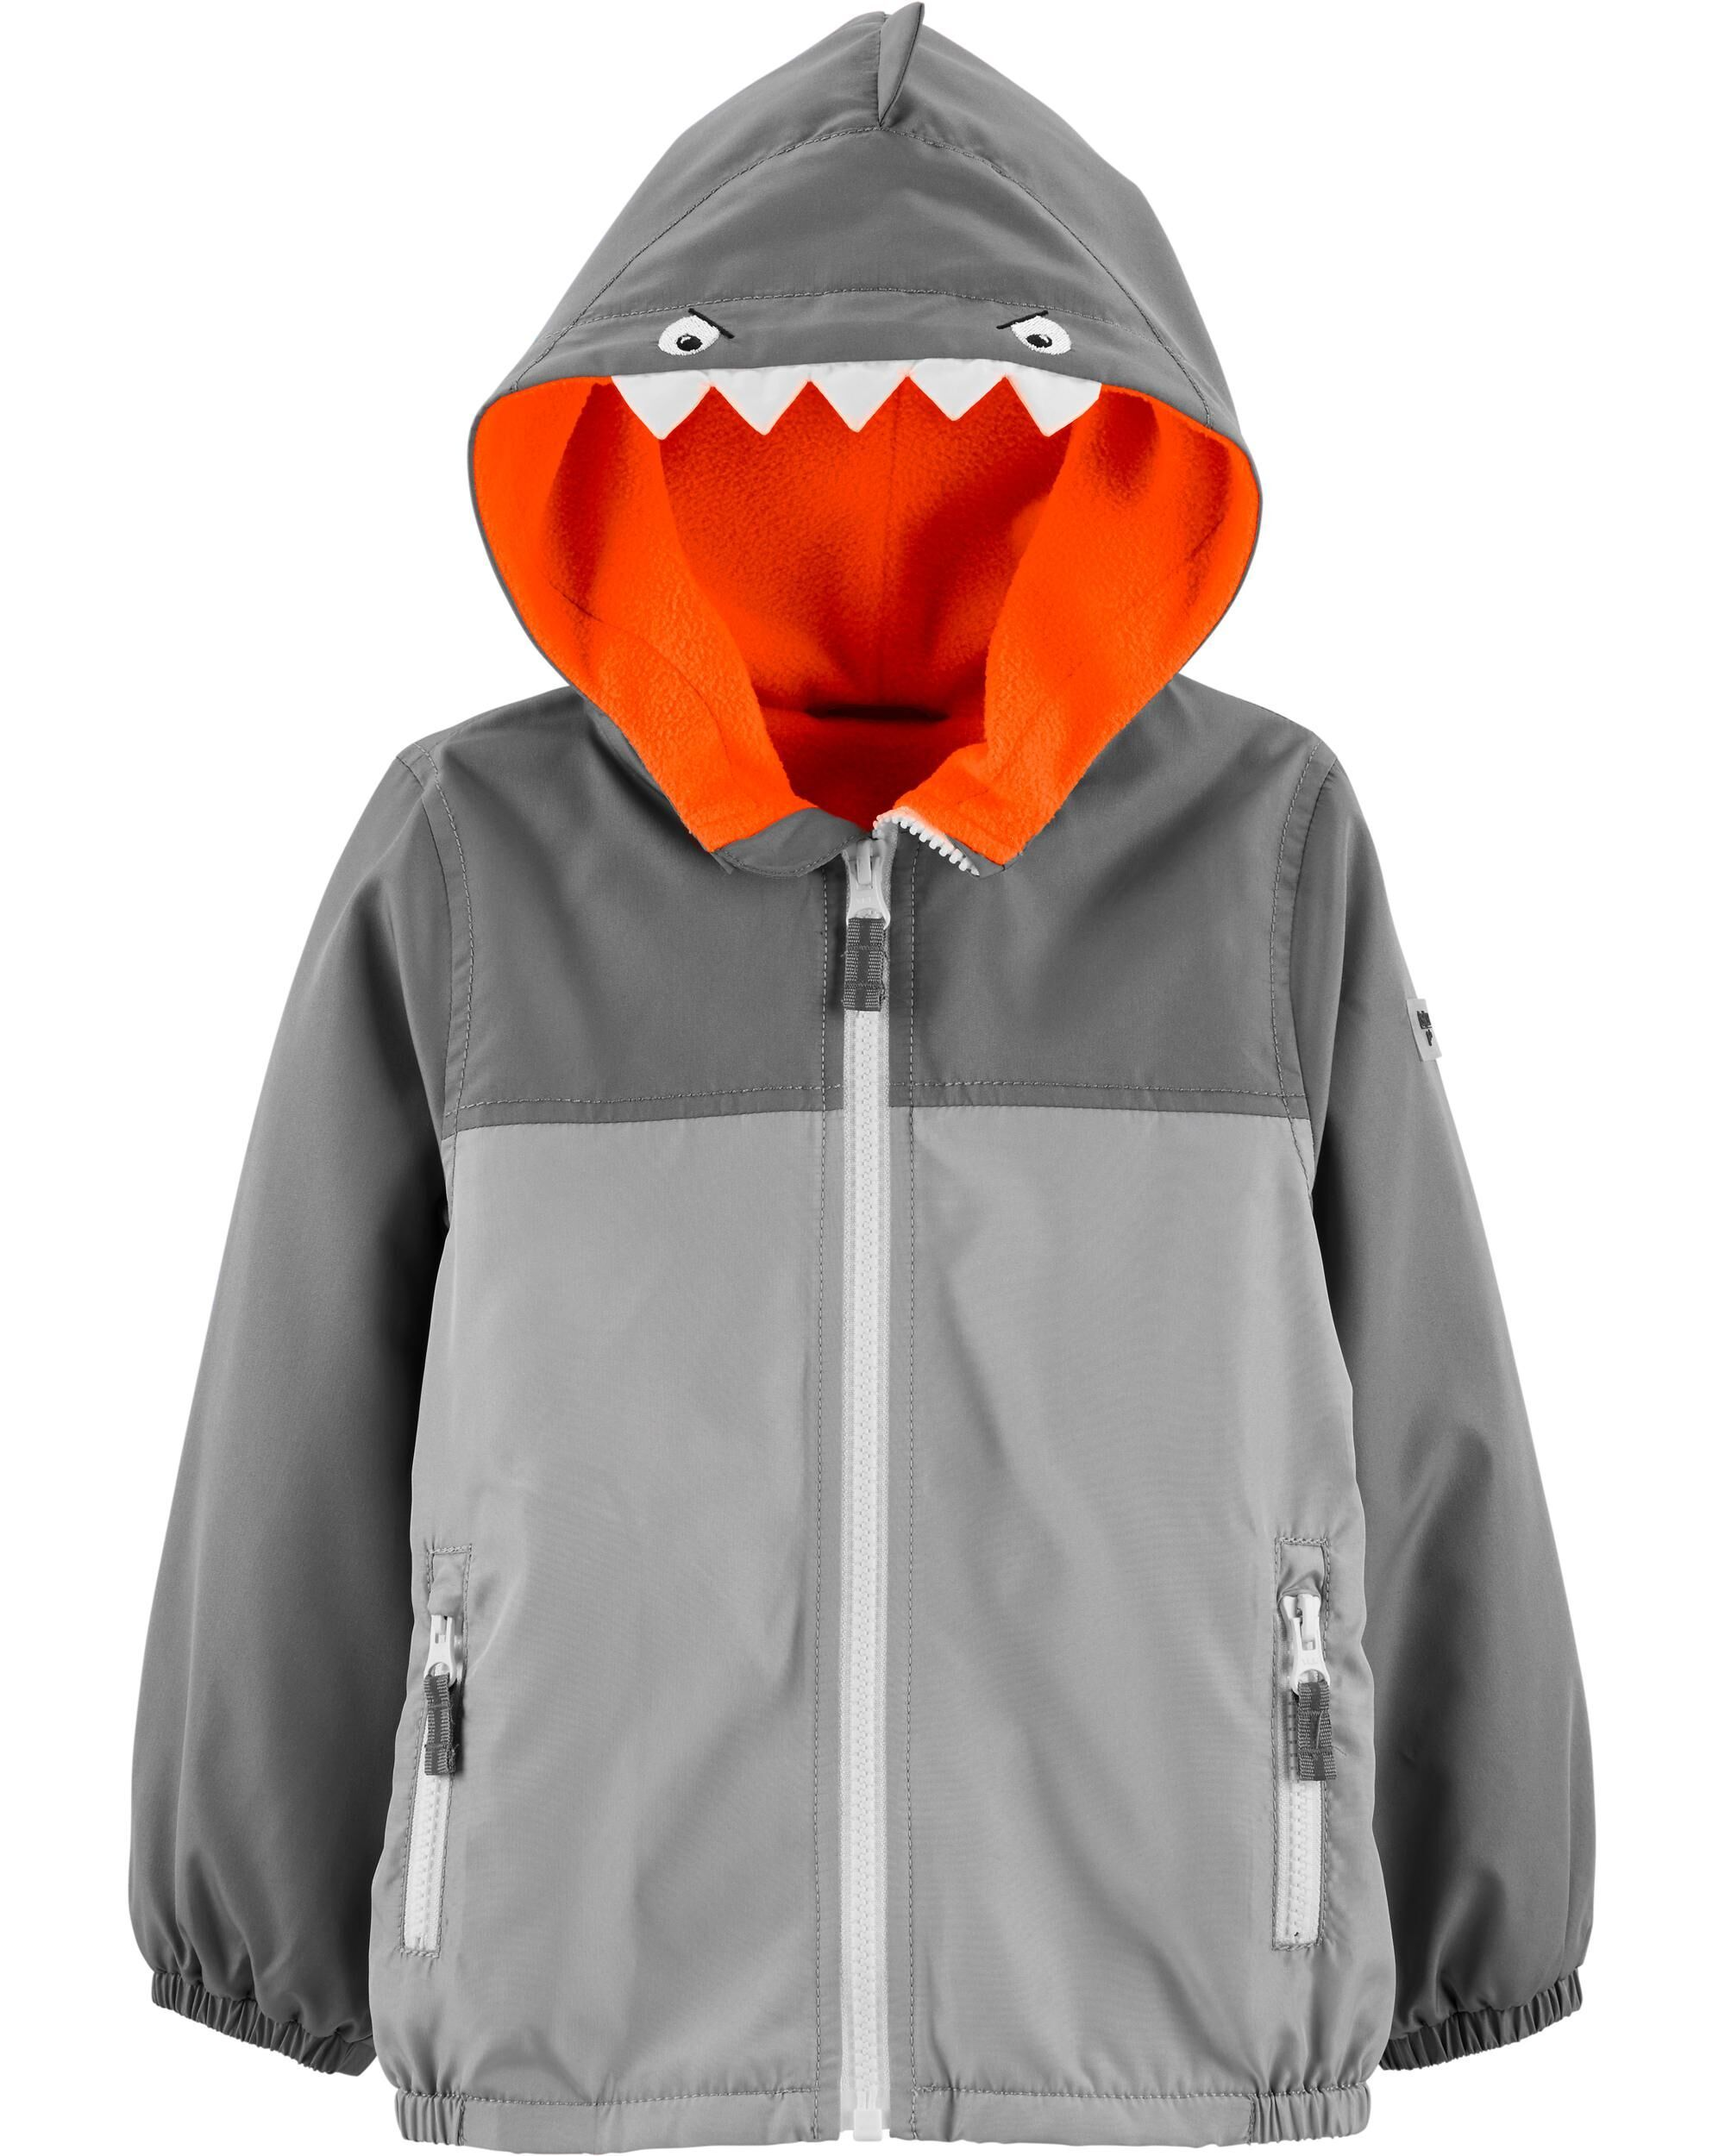 Mid Weight Shark Jacket Boy Outerwear Jackets Shopping Outfit [ 2500 x 2000 Pixel ]